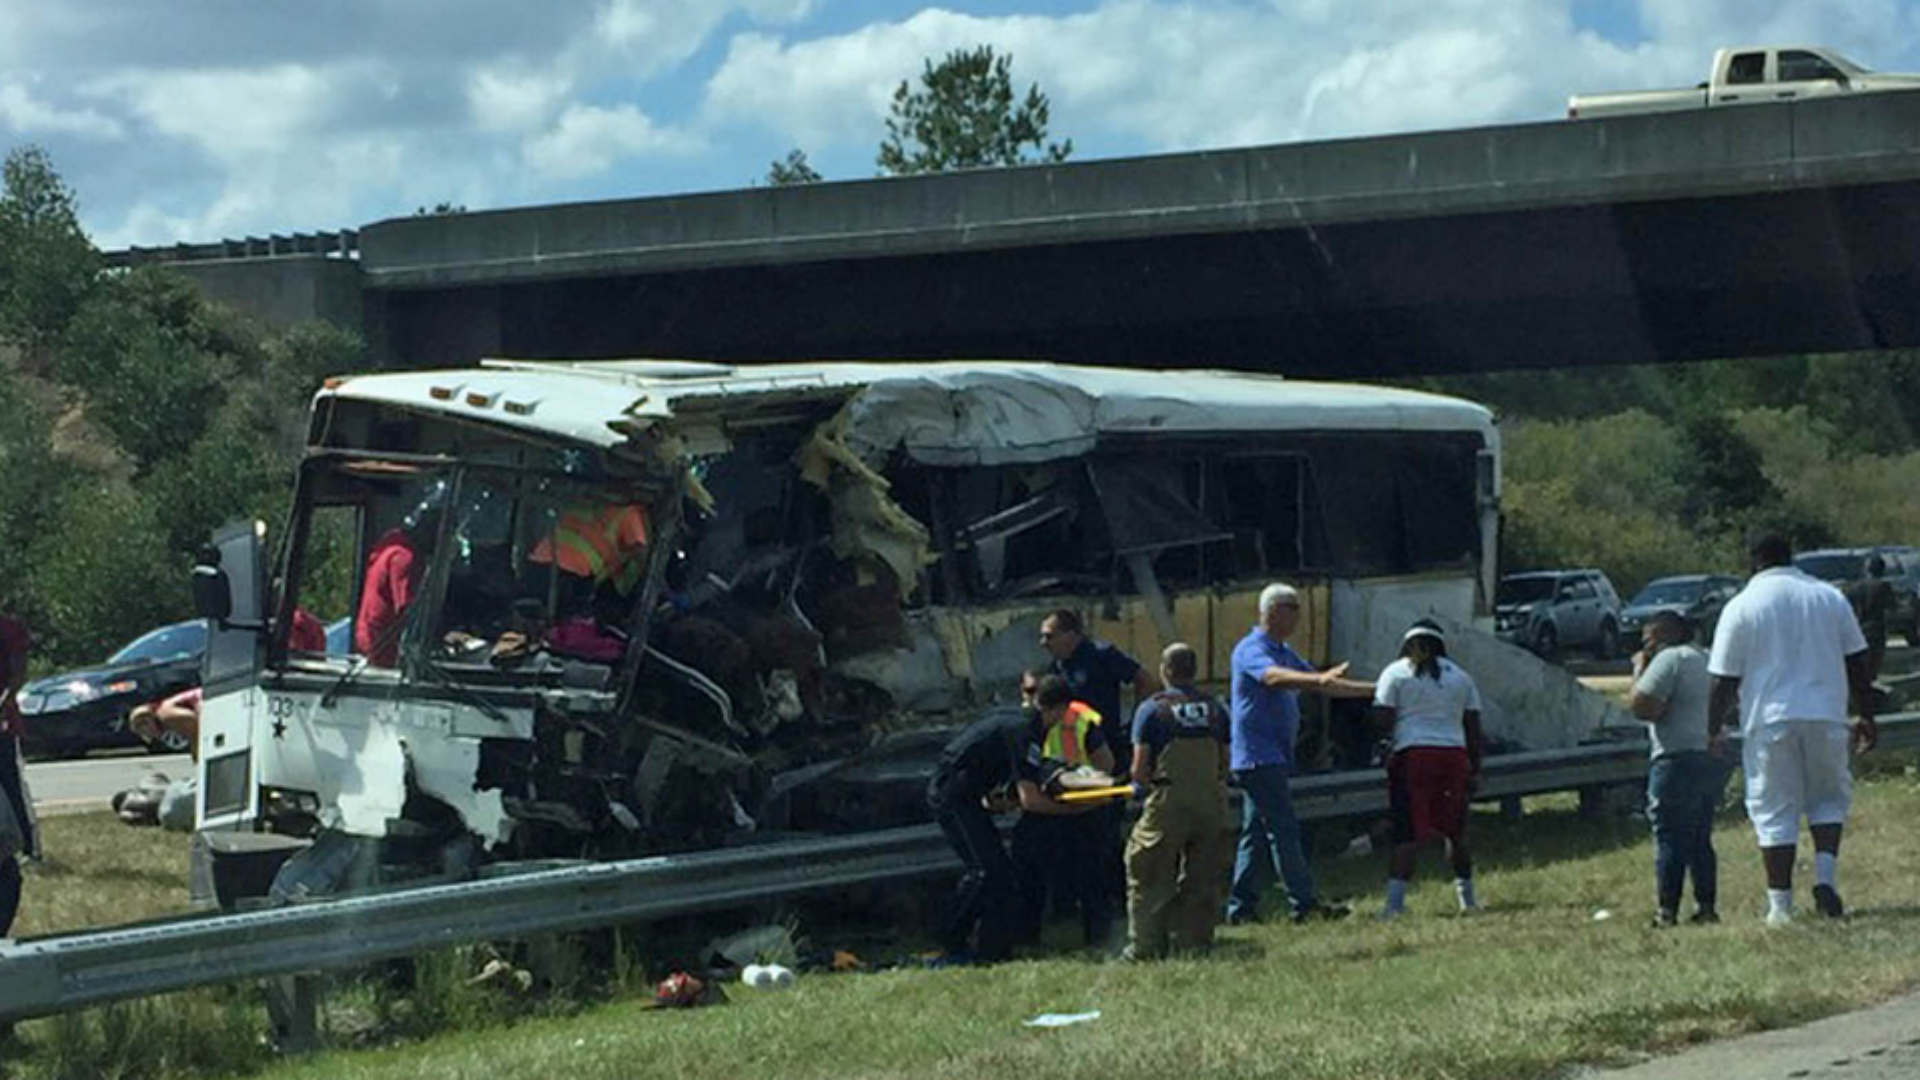 4 dead after football team bus crashes in North Carolina